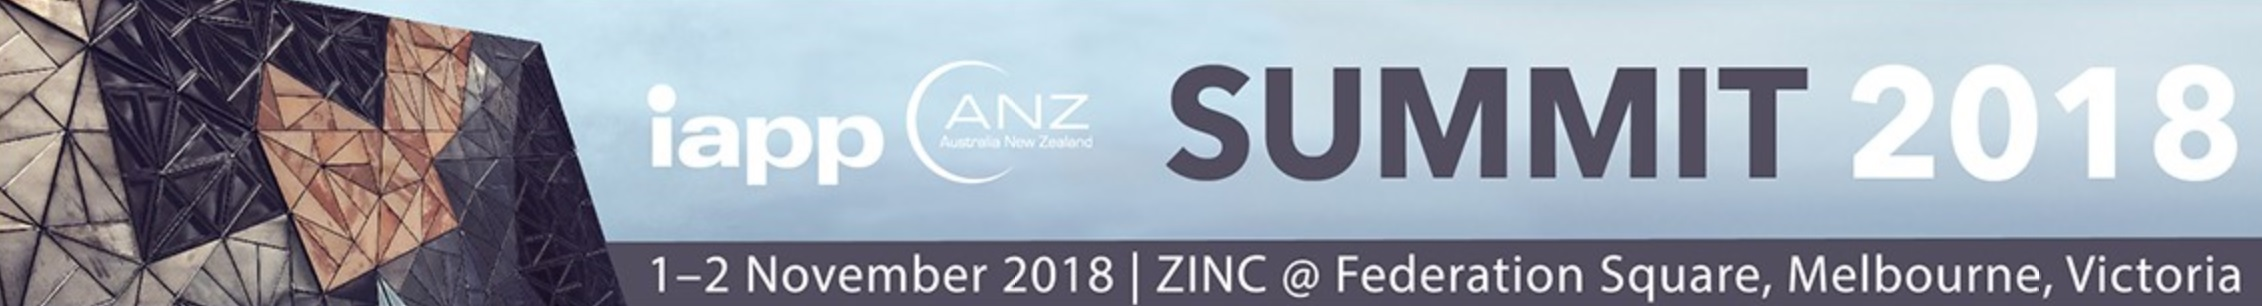 iappANZ Annual Summit – Melbourne 2018